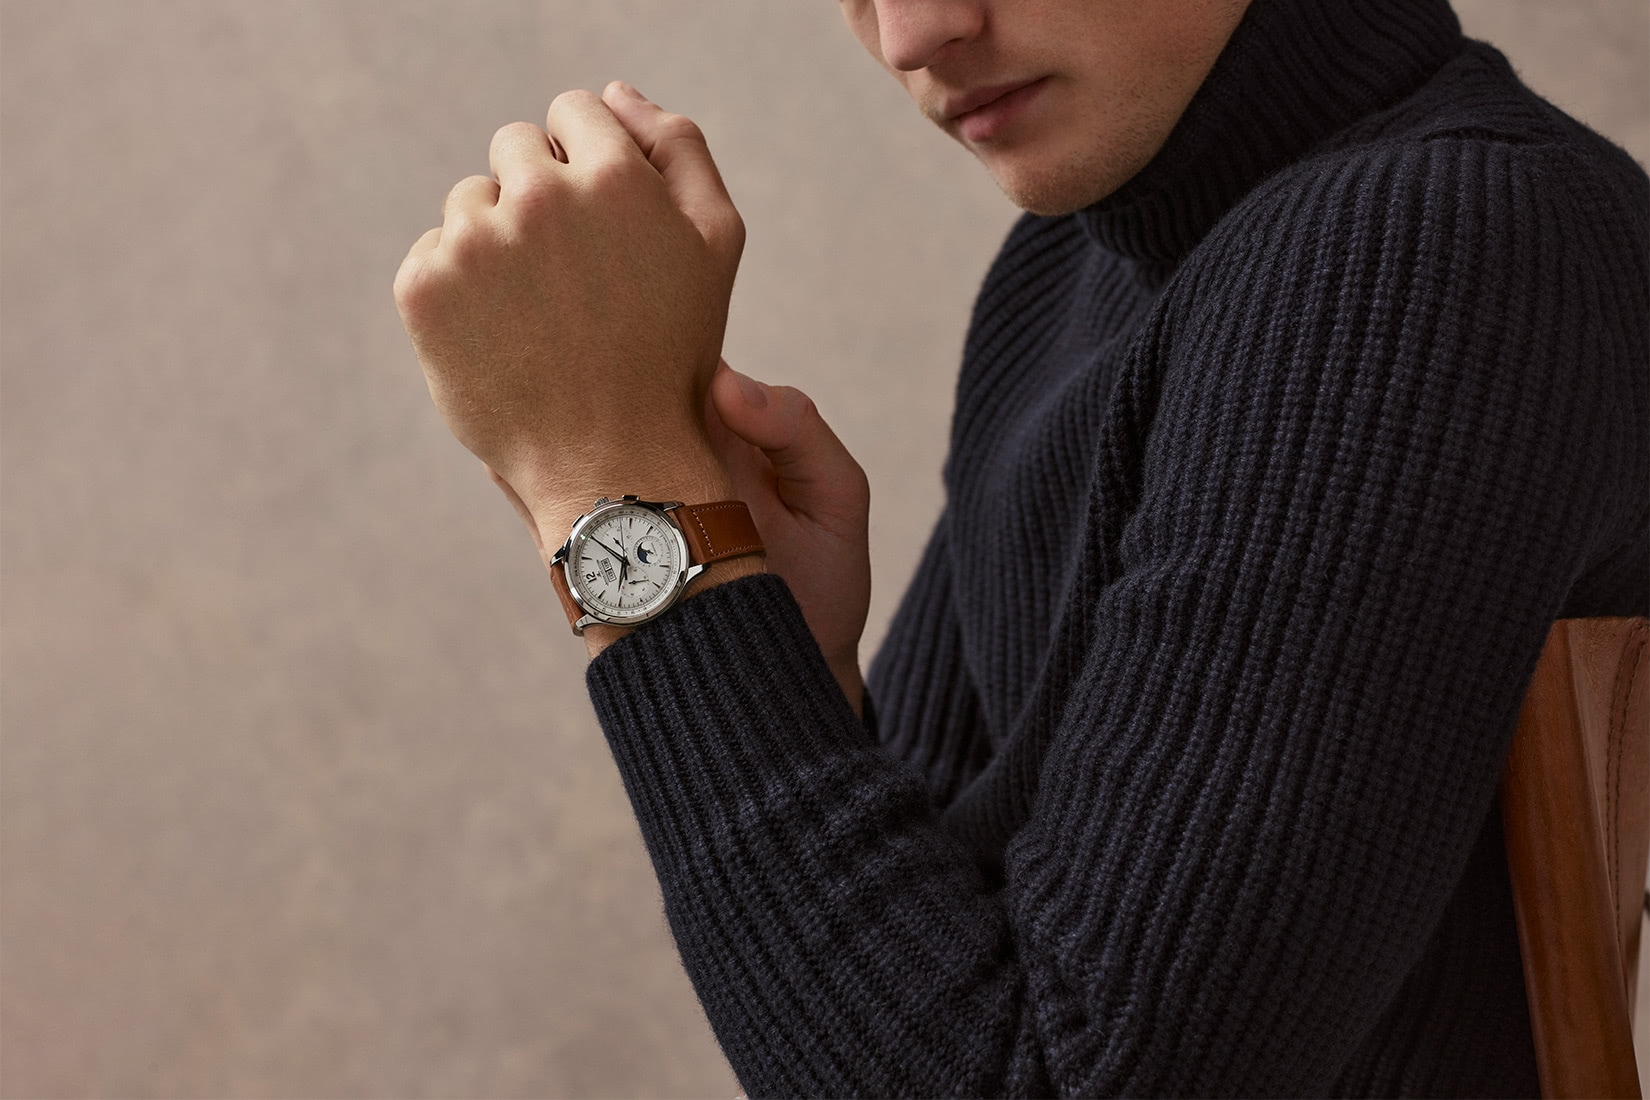 jaeger lecoultre luxury watches men style guide luxe digital